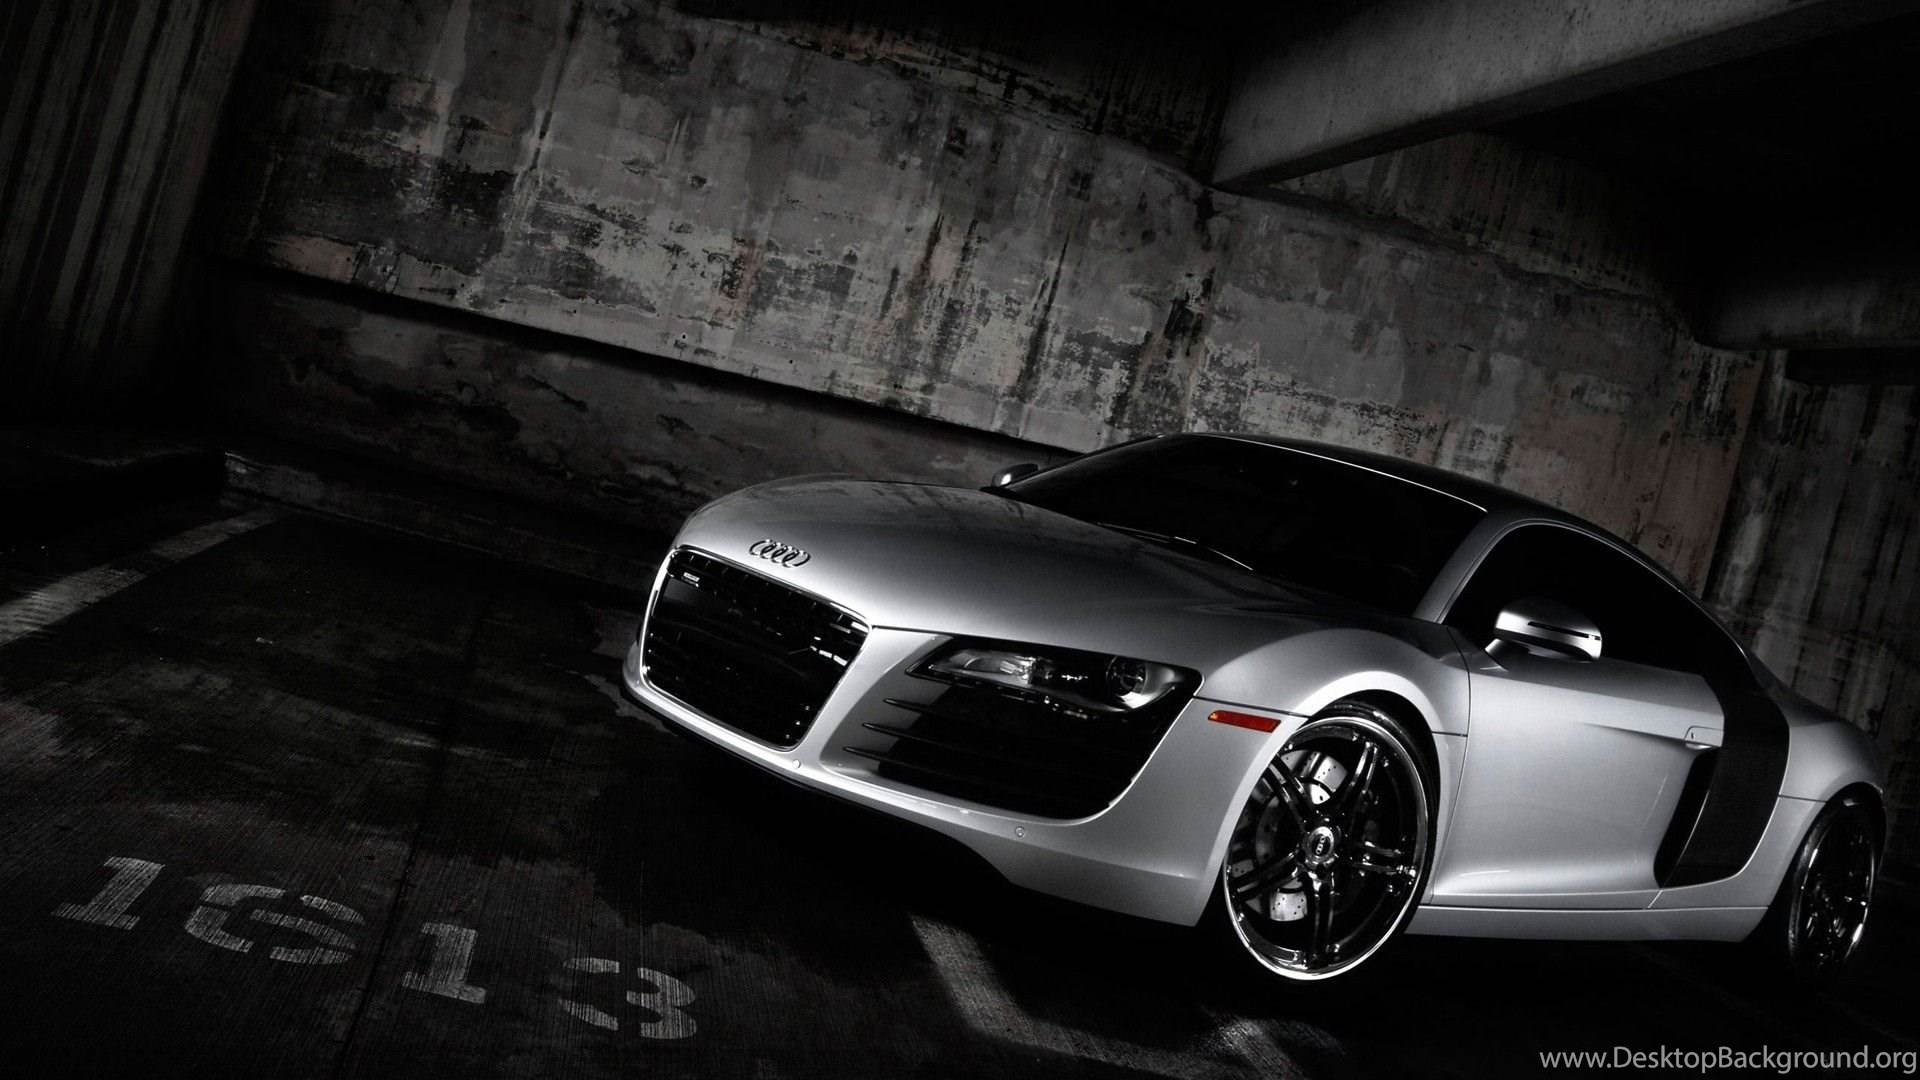 Sports Cars Wallpapers Hd Wallpapers Cave Desktop Background